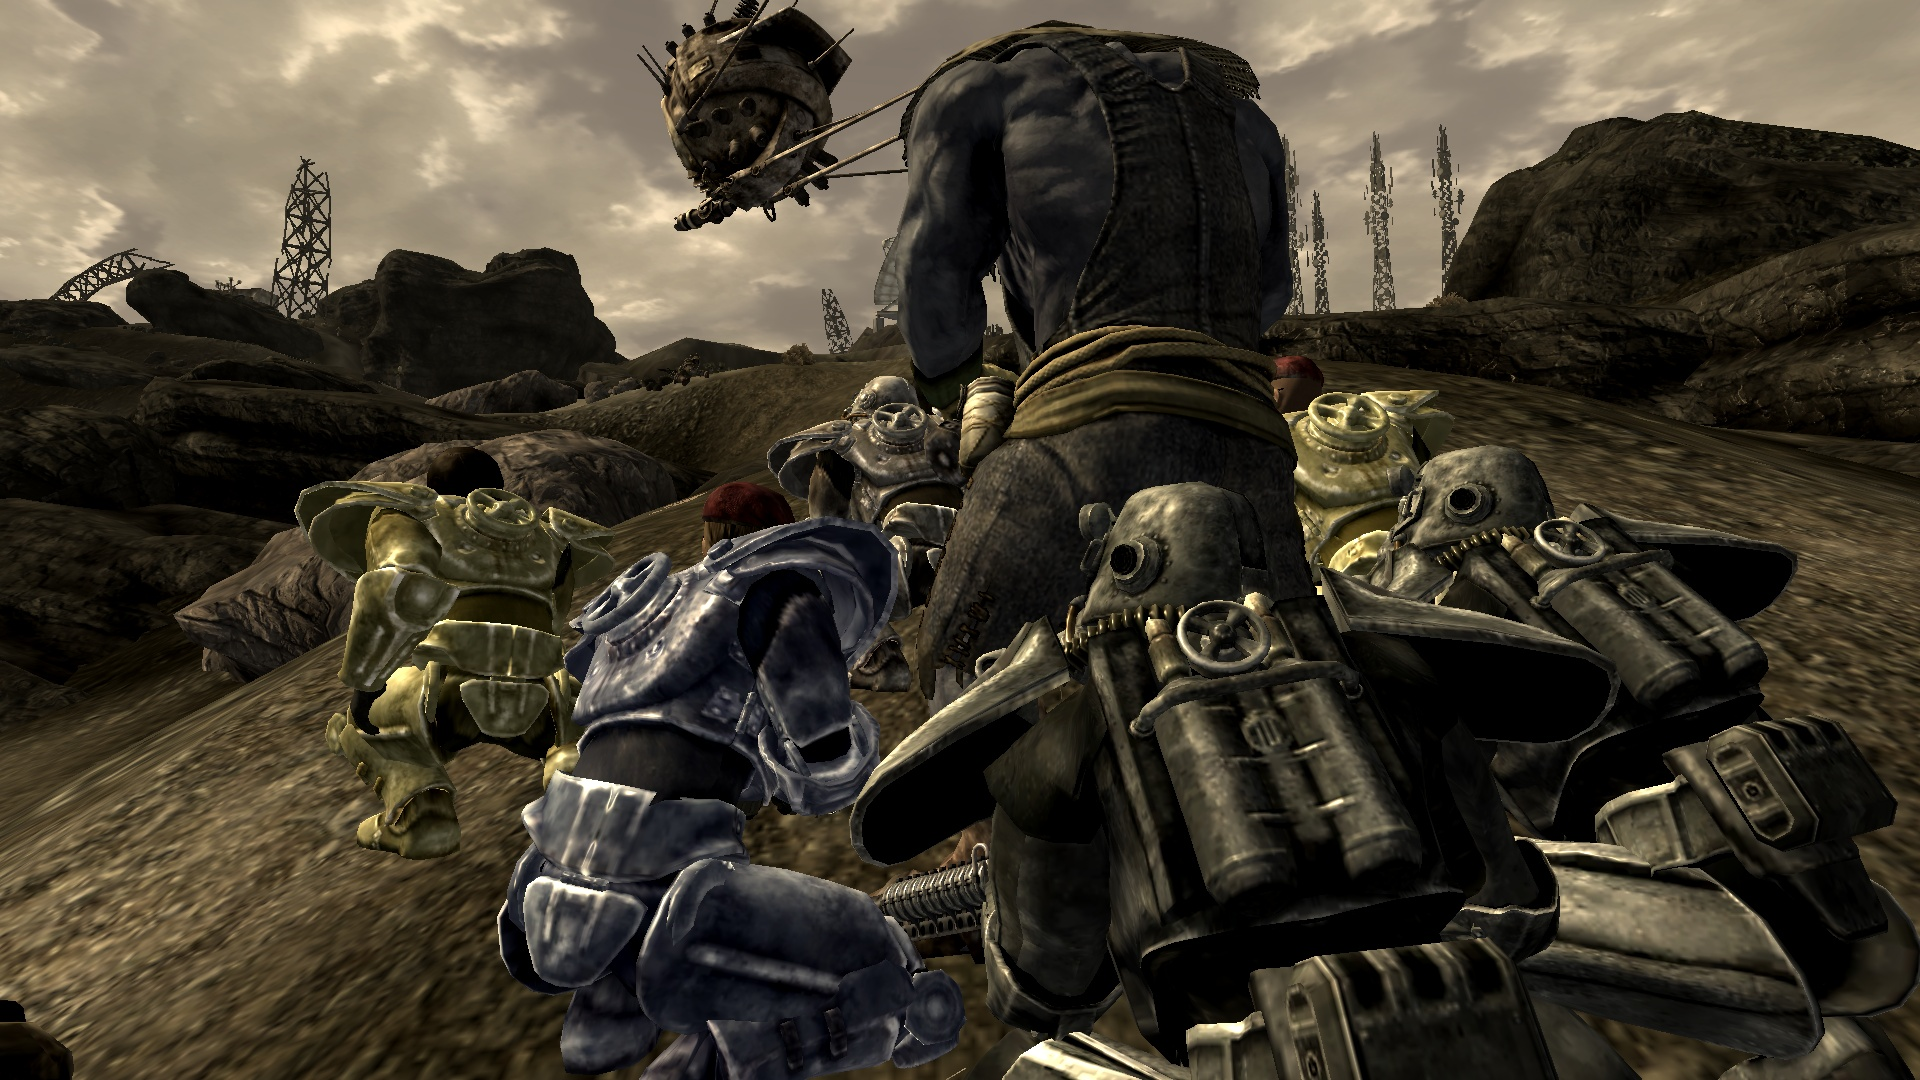 Phalanx for New Vegas at Fallout New Vegas - mods and community